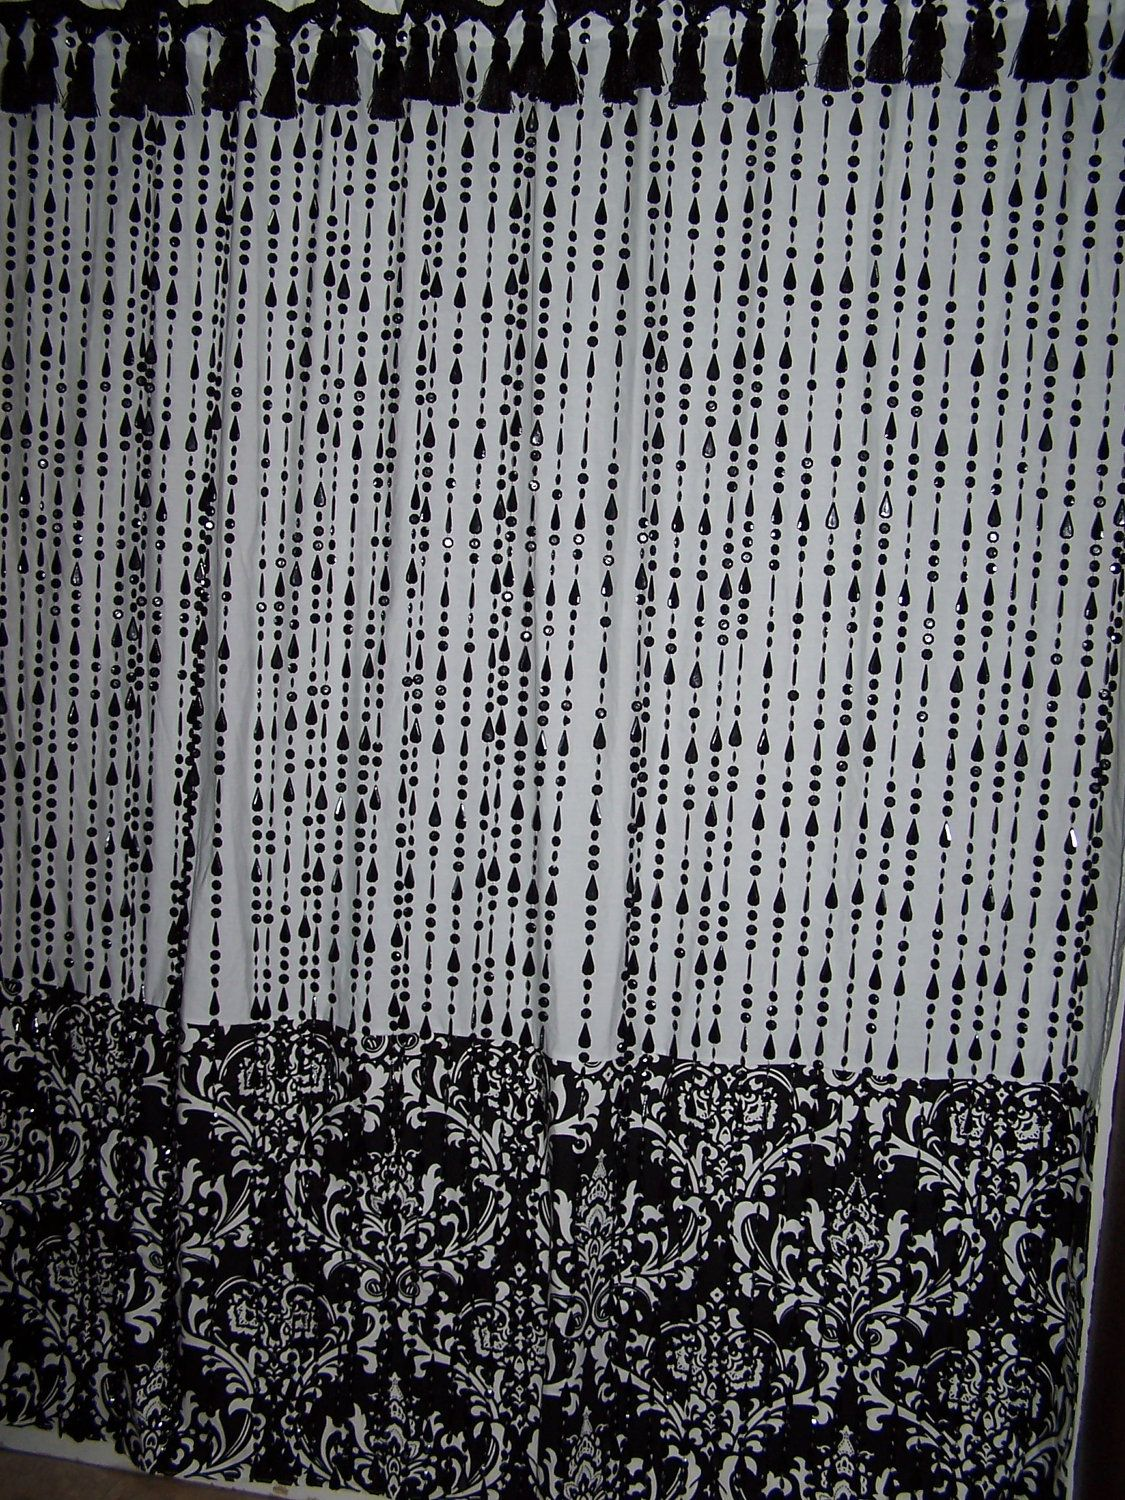 Shower Curtain Beads Tassel Damask Designer Fabric Black